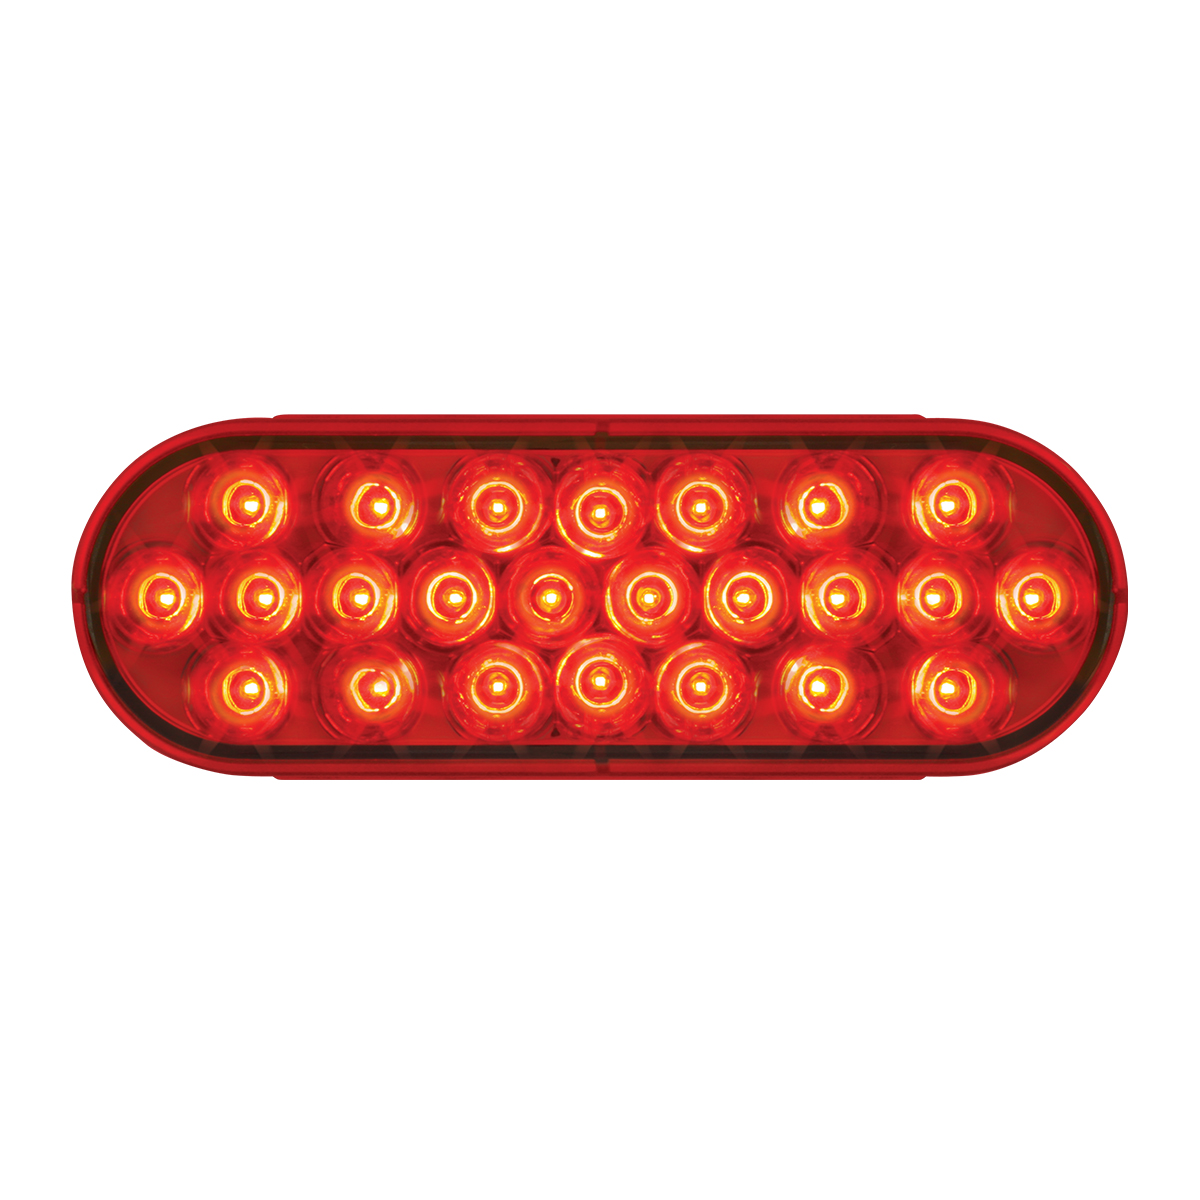 #78233 - Oval Sealed Pearl LED Flat Red/Red Lights